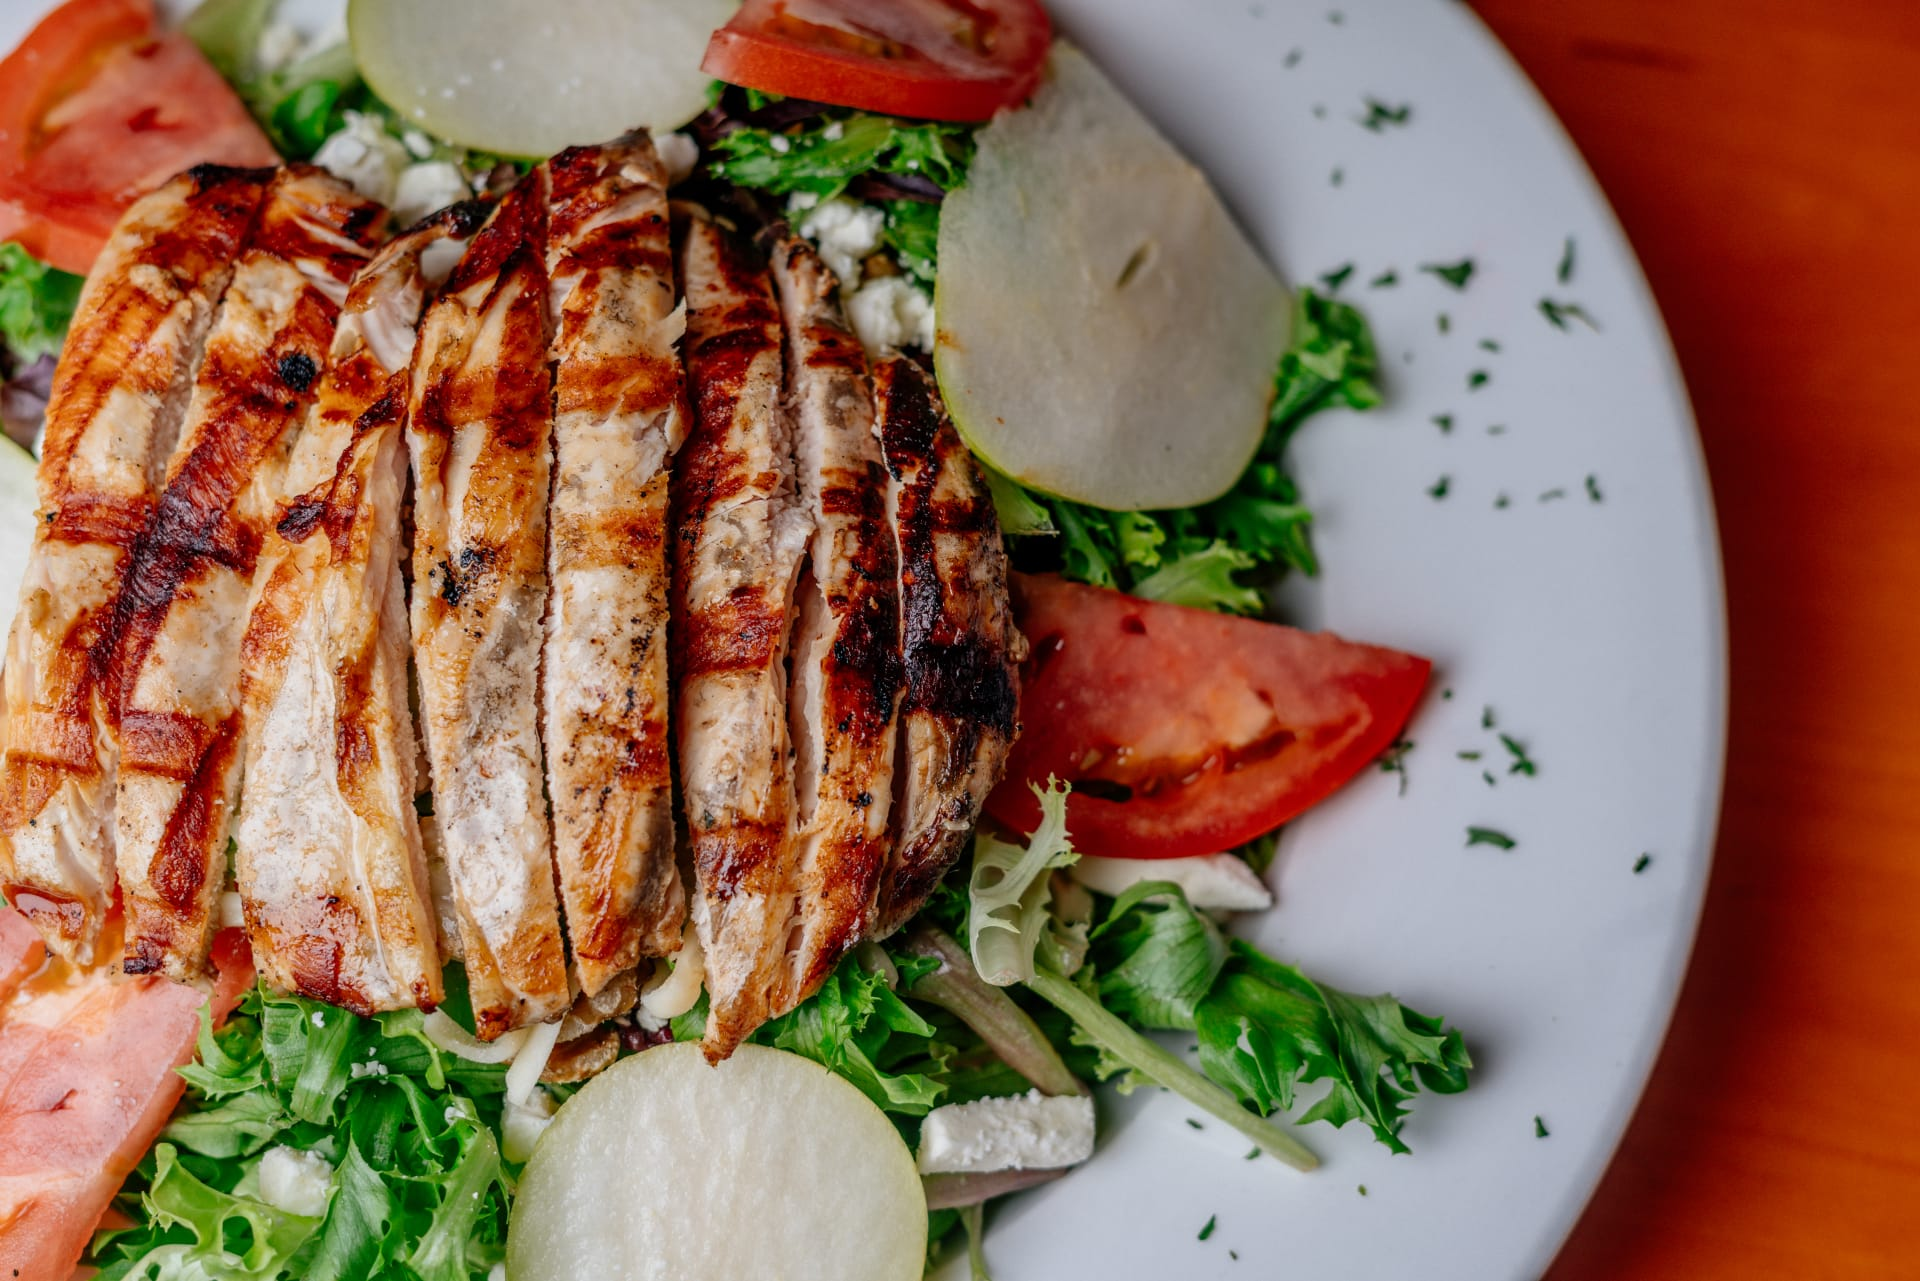 Seasonal Salad with Grilled Chicken